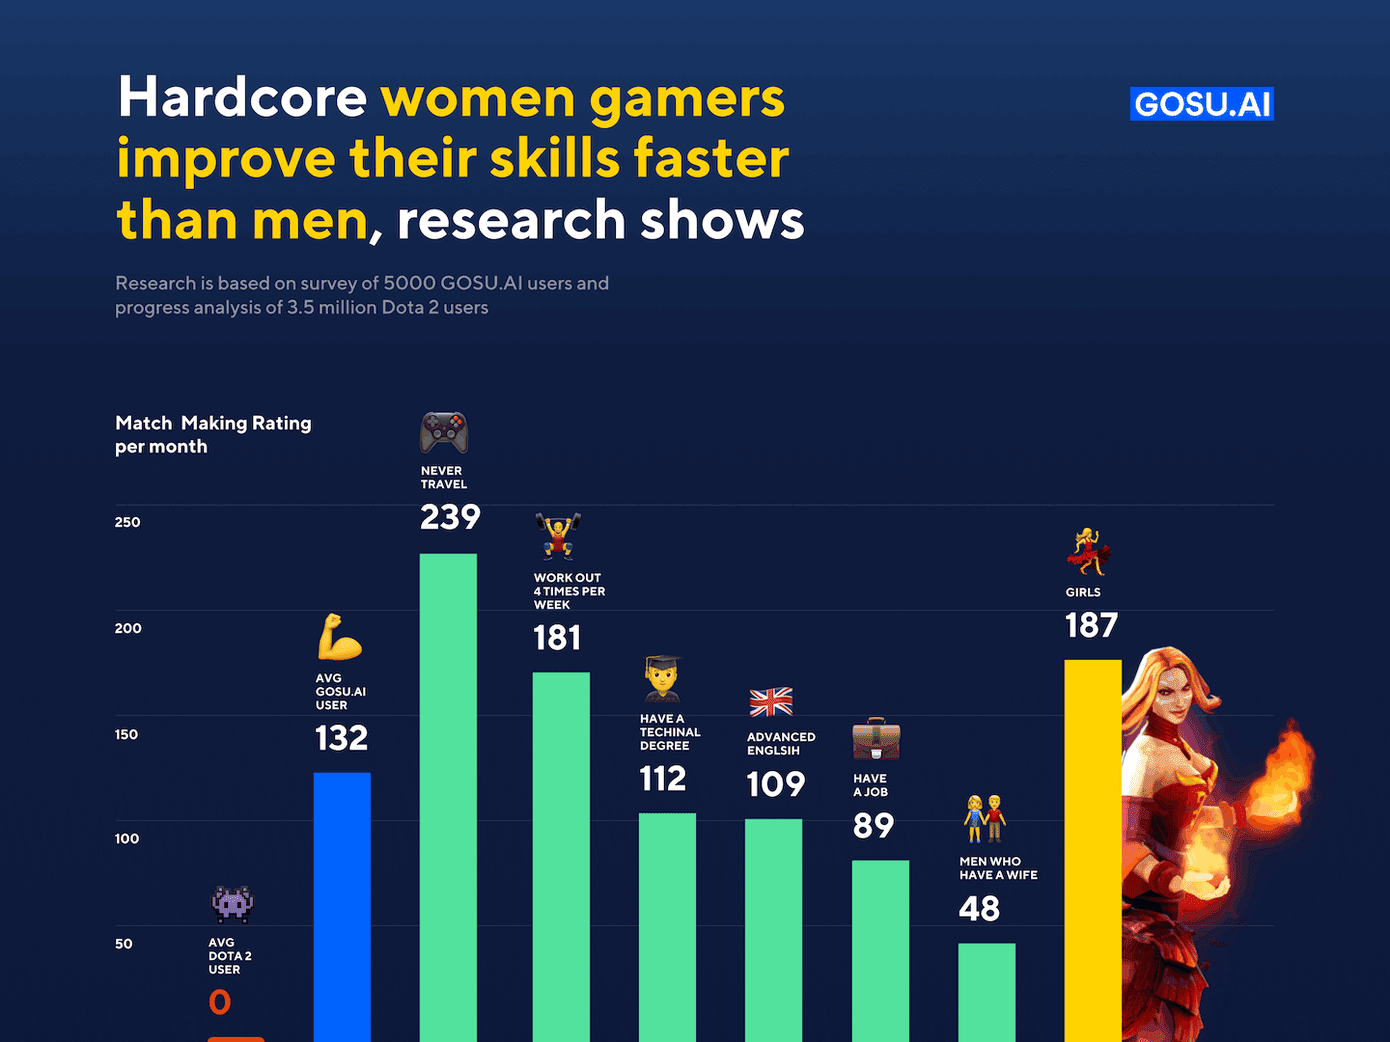 Hardcore women gamers improve their skills faster than men, research shows